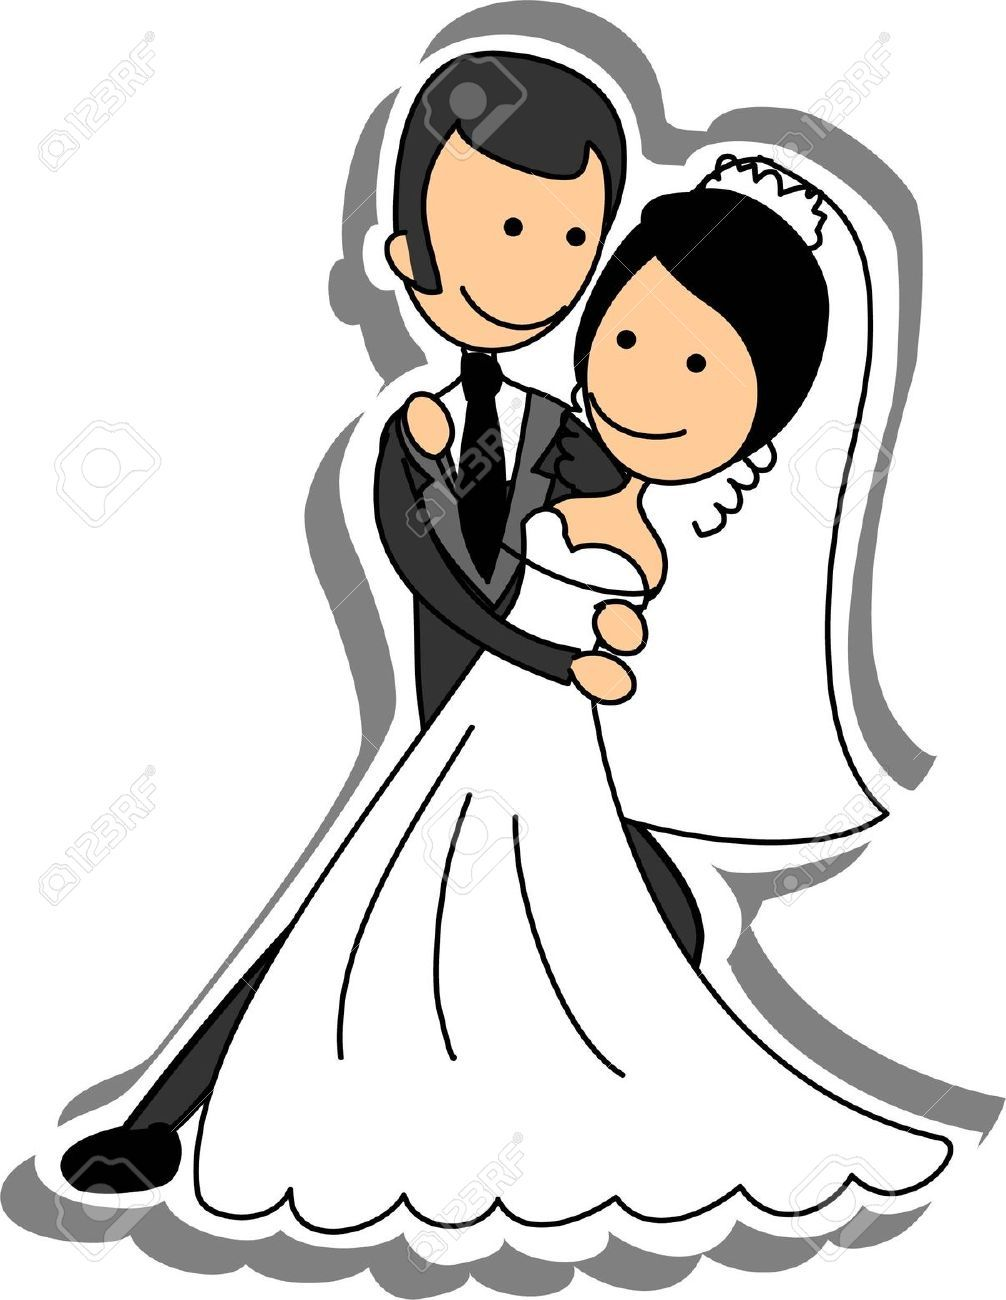 wedding picture bride and groom in love royalty free cliparts  [ 1006 x 1300 Pixel ]